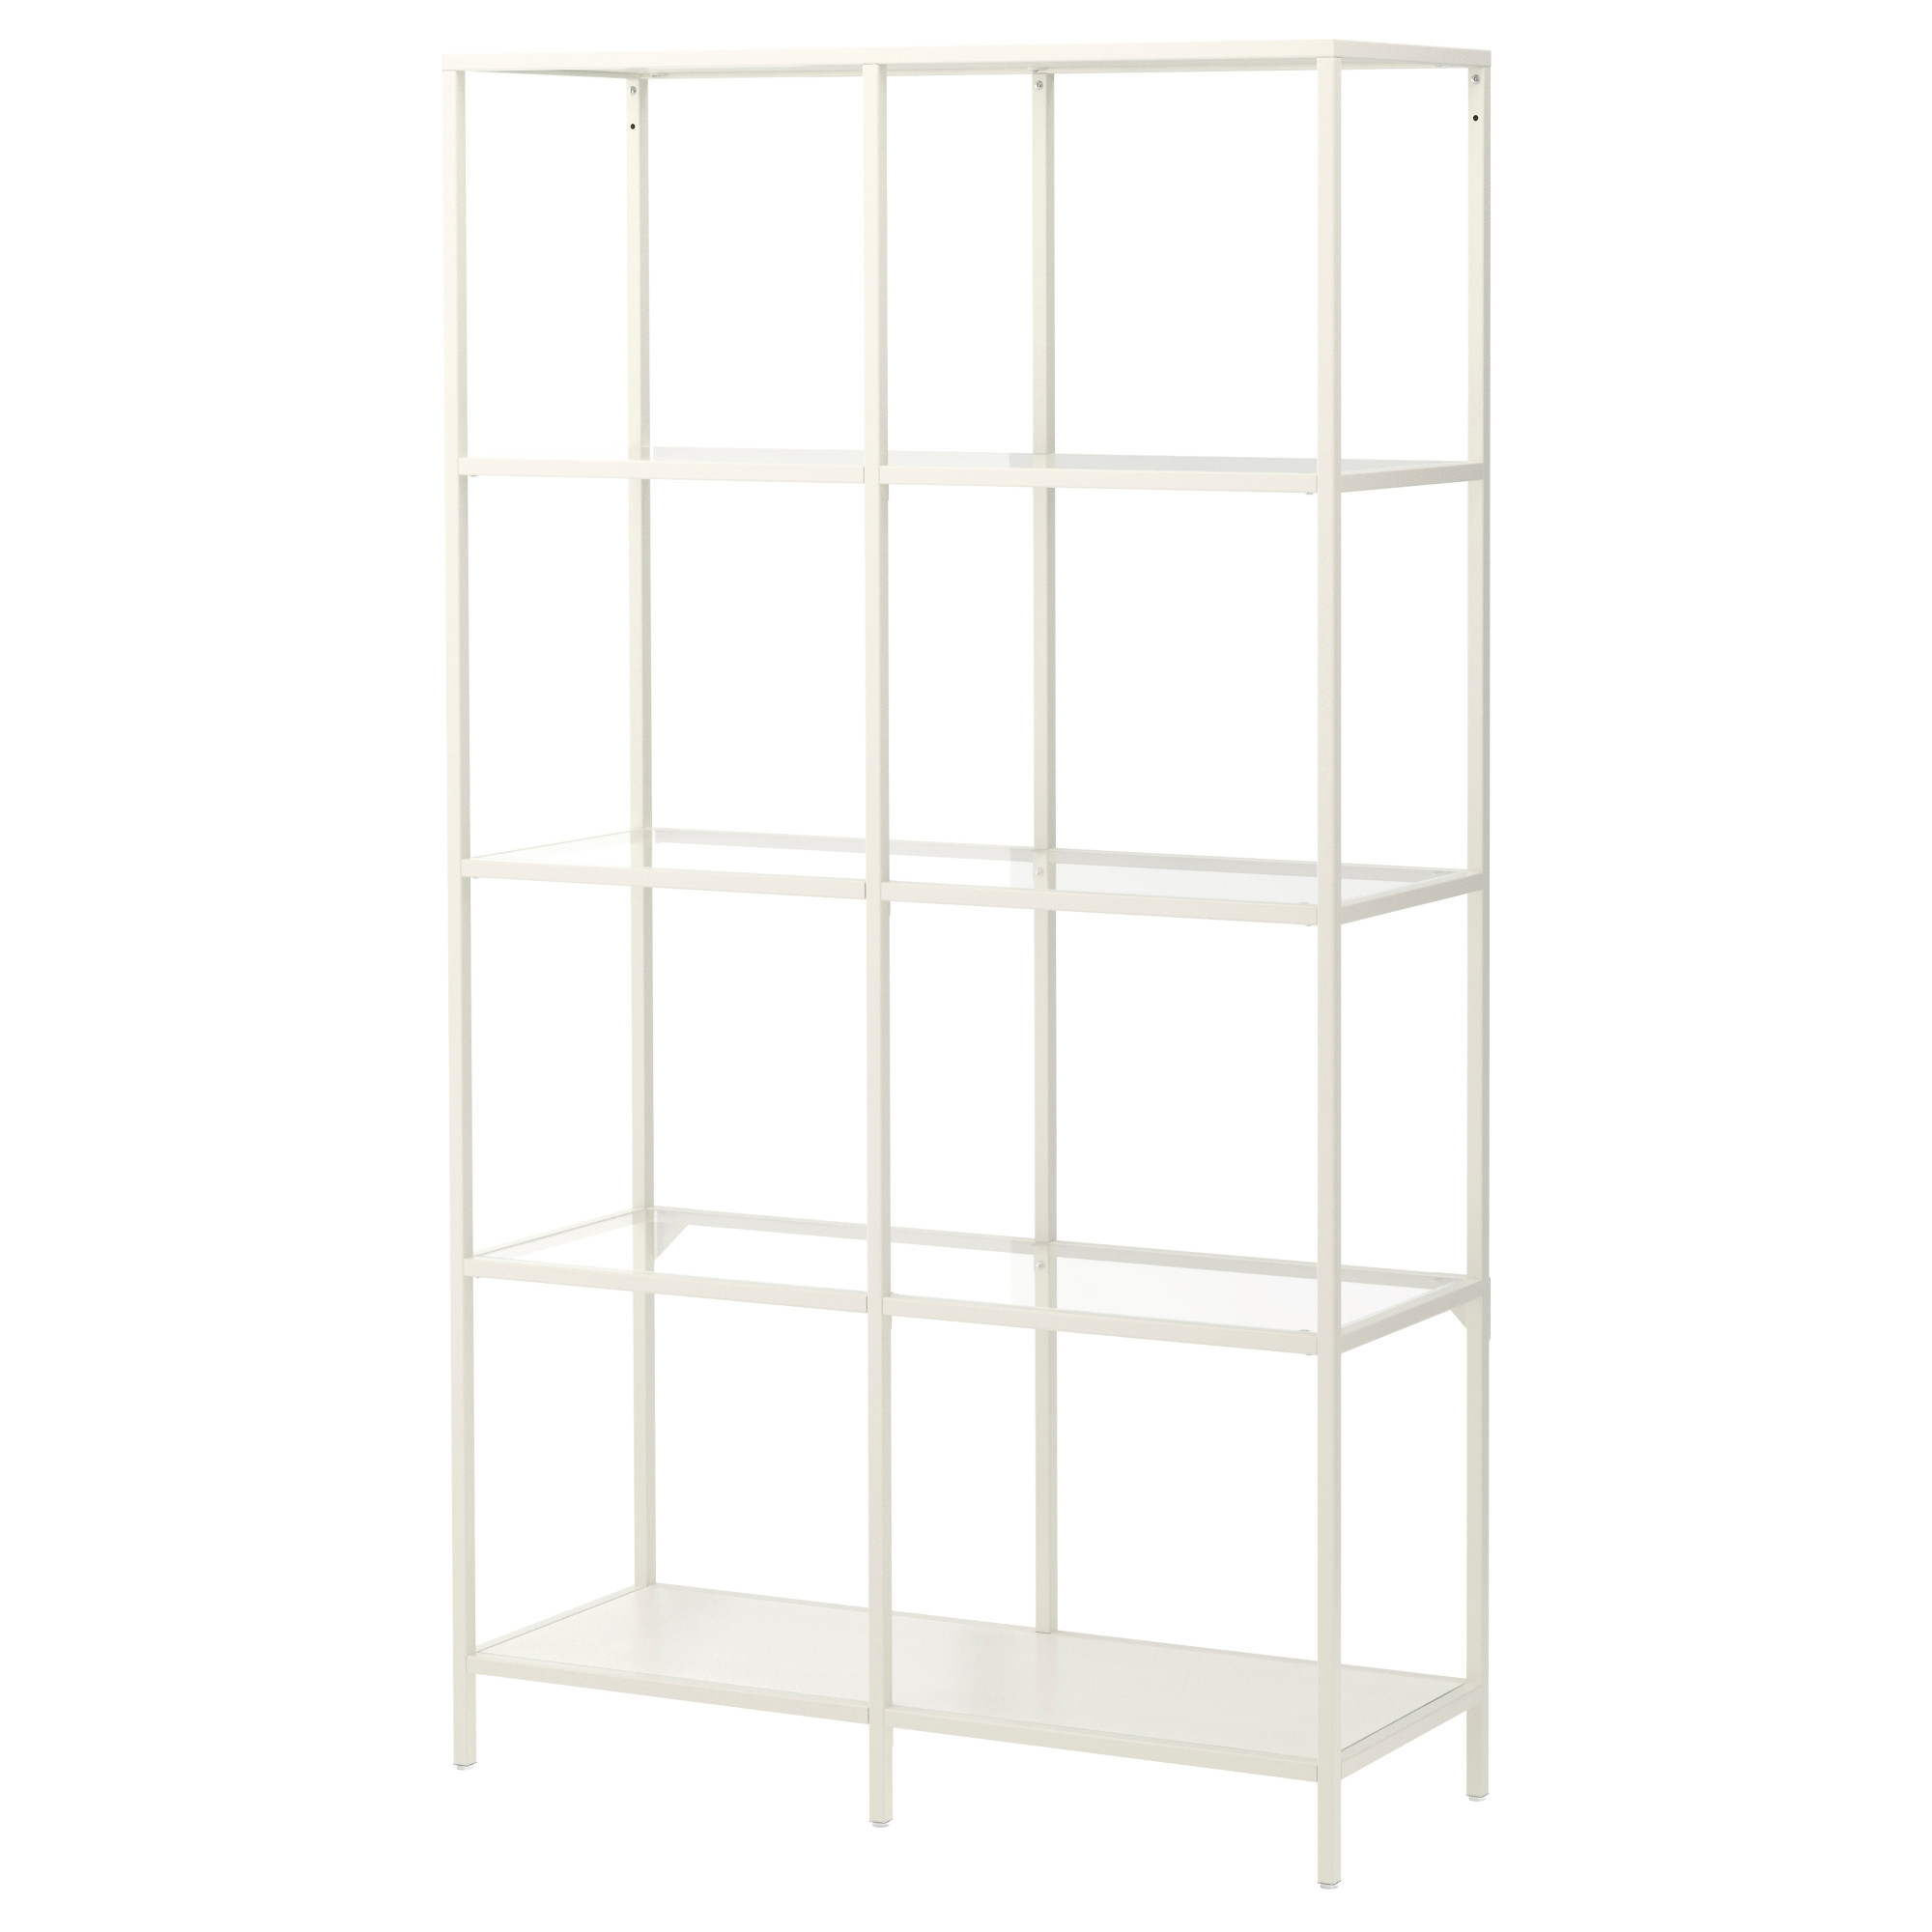 Shelves Shelving Units Ikea Regarding Suspended Glass Shelf (View 14 of 15)